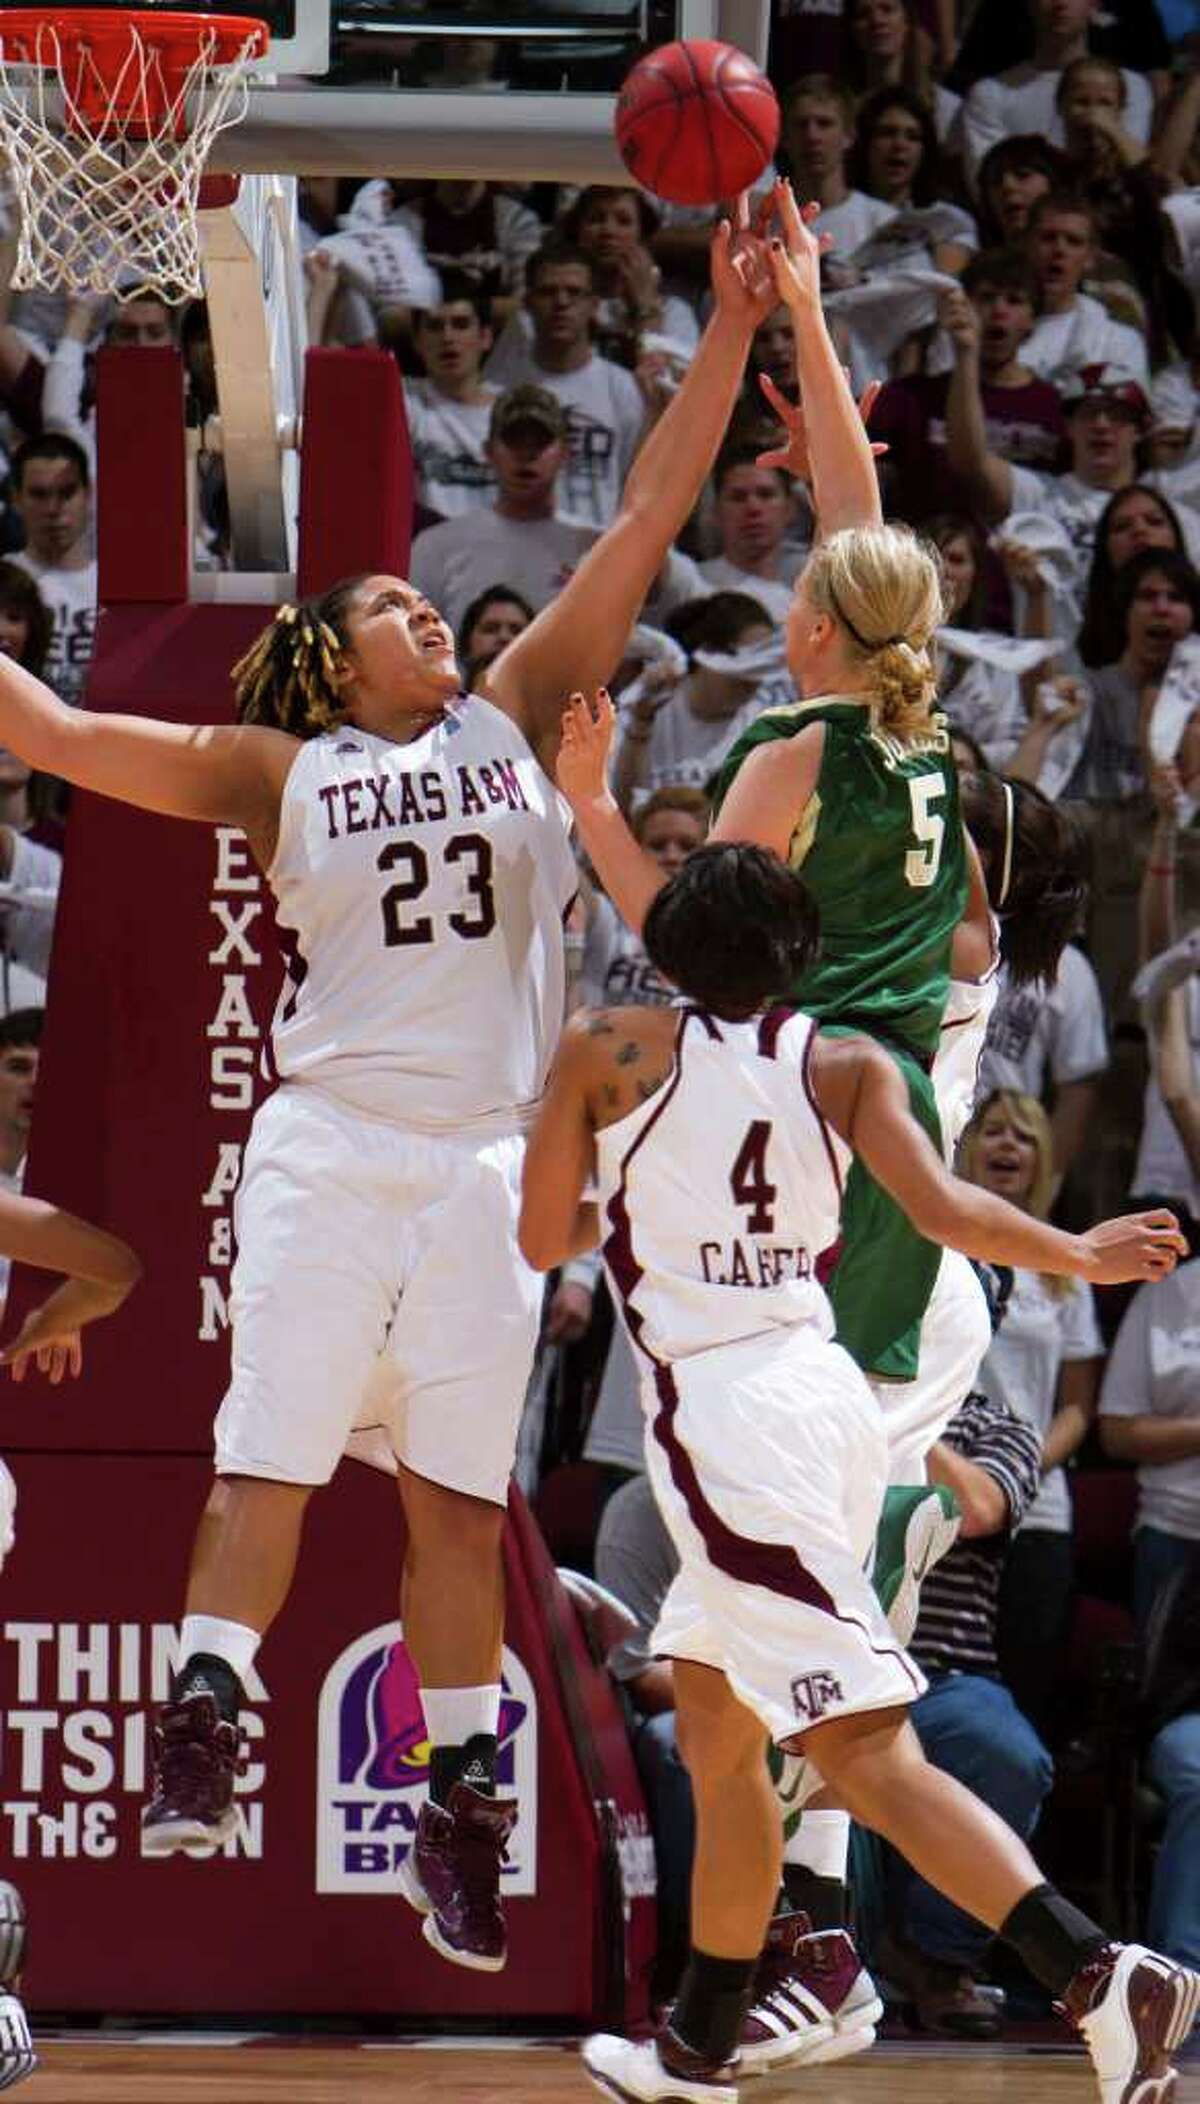 Texas A&M's Danielle Adams blocks a shot from Baylor guard Melissa Jones during the first half on Sunday, Jan. 30, 2011, in College Station.